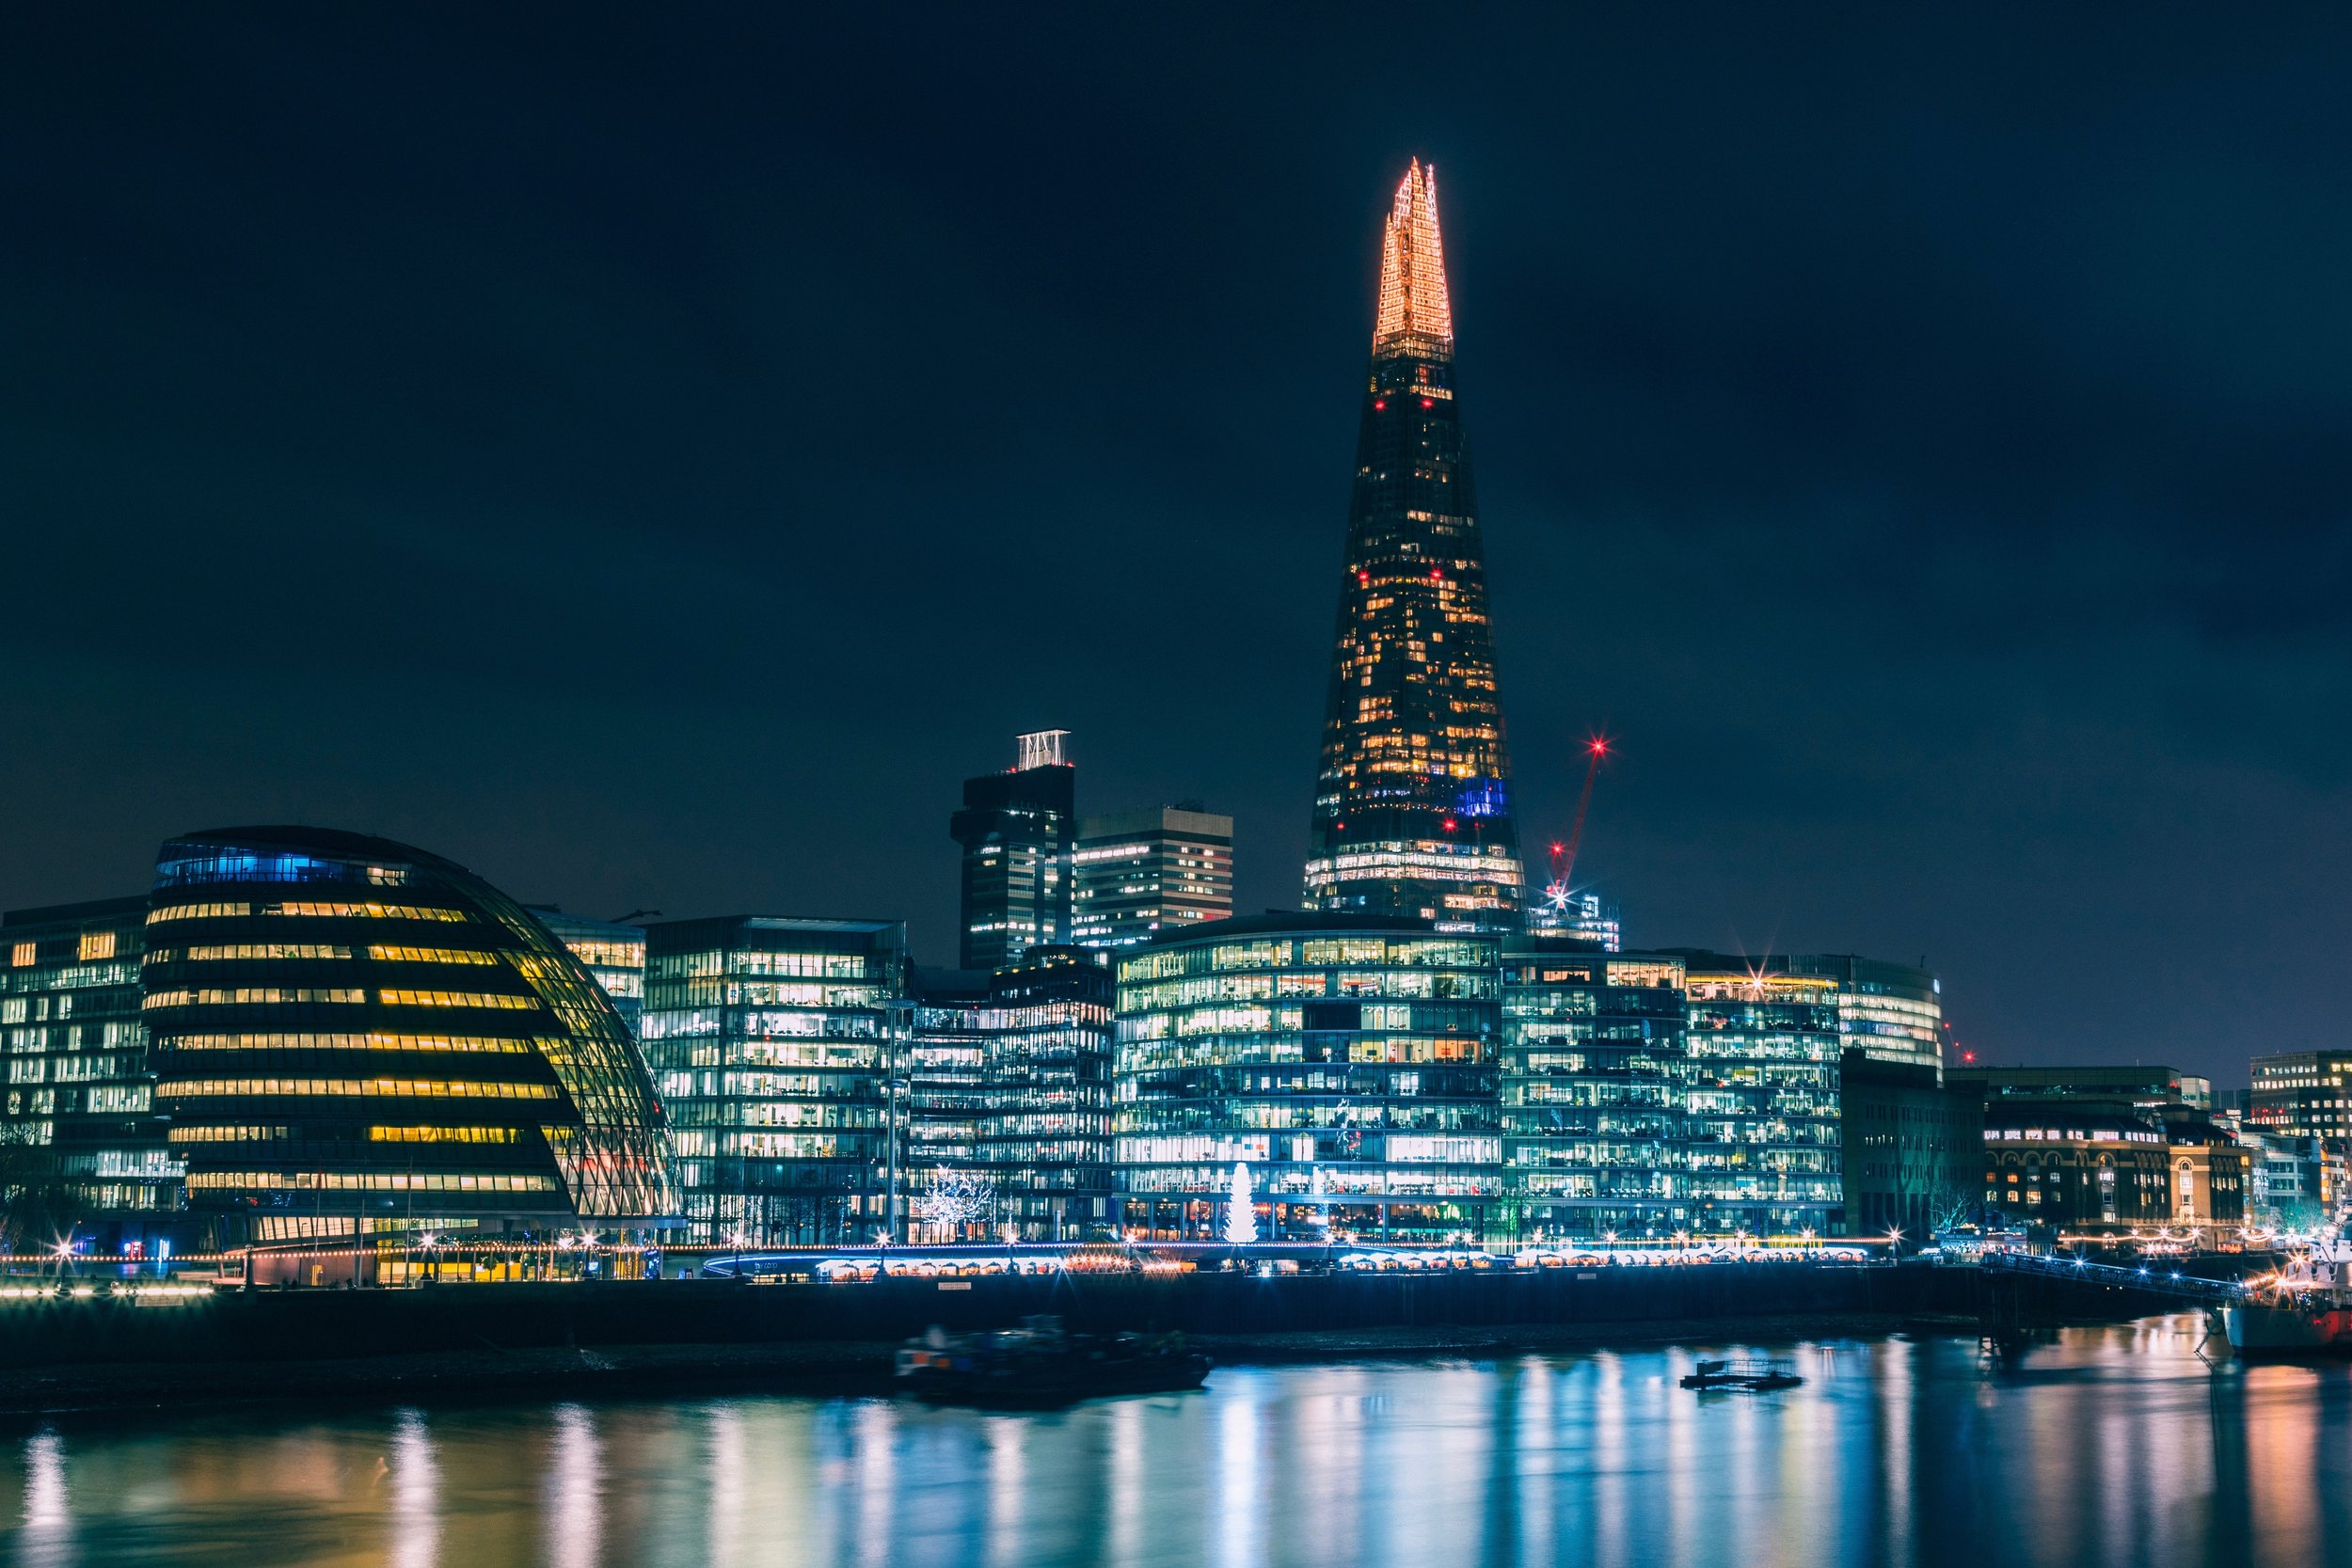 The Shard towering over the London night